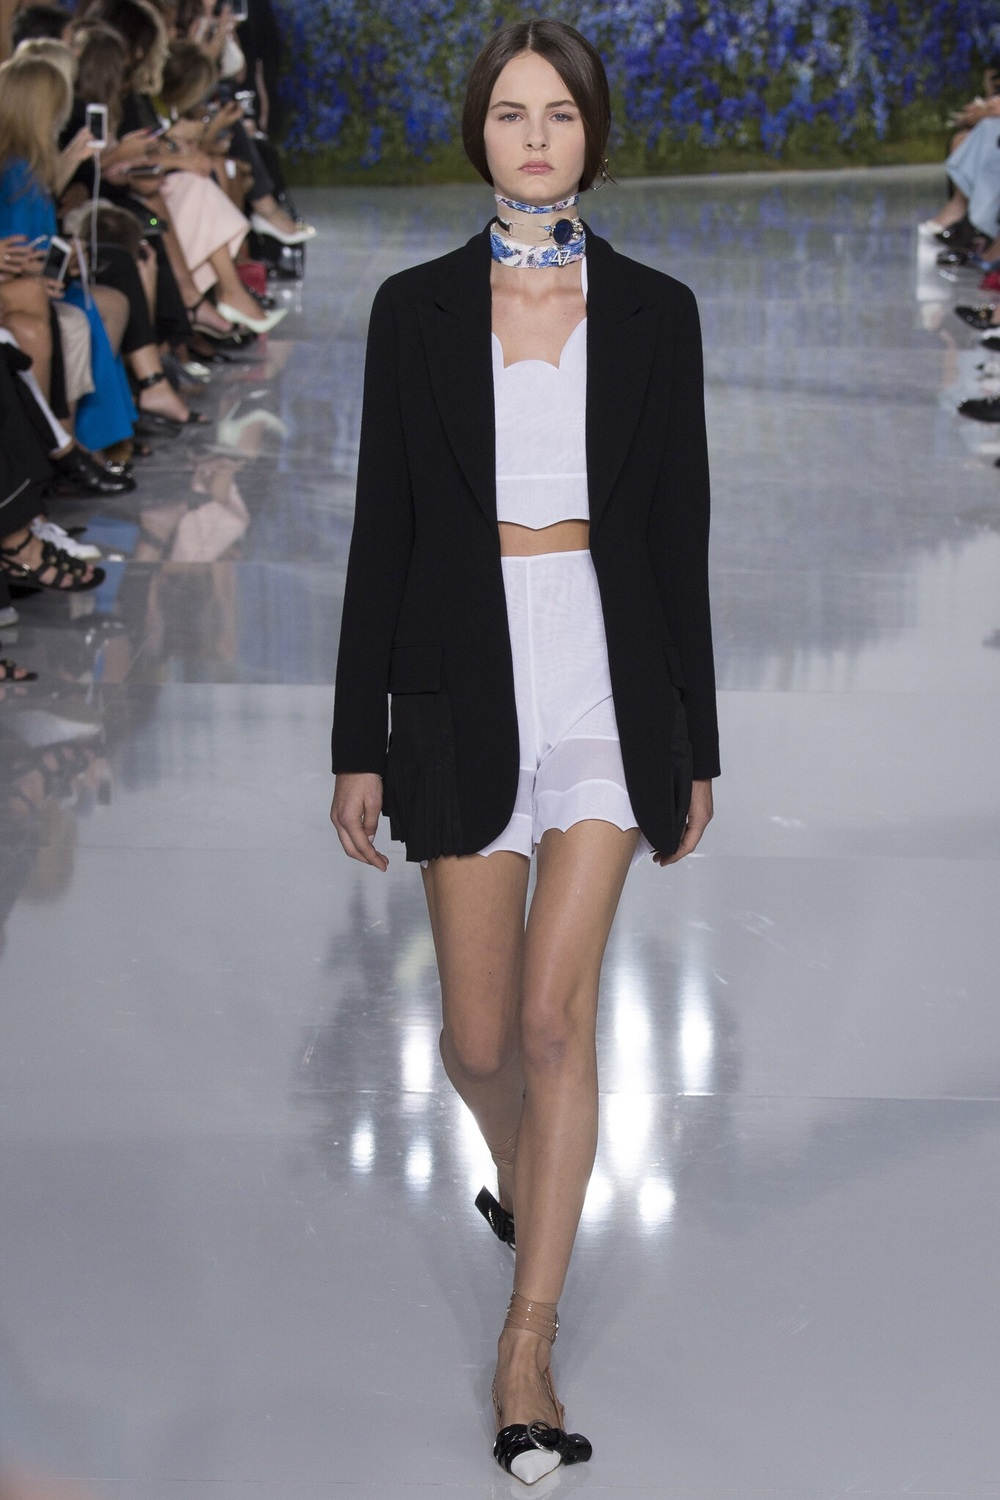 Christian Dior, Look #6 http://www.vogue.com/fashion-shows/spring-2016-ready-to-wear/christian-dior/slideshow/collection#6?mbid=ios_share